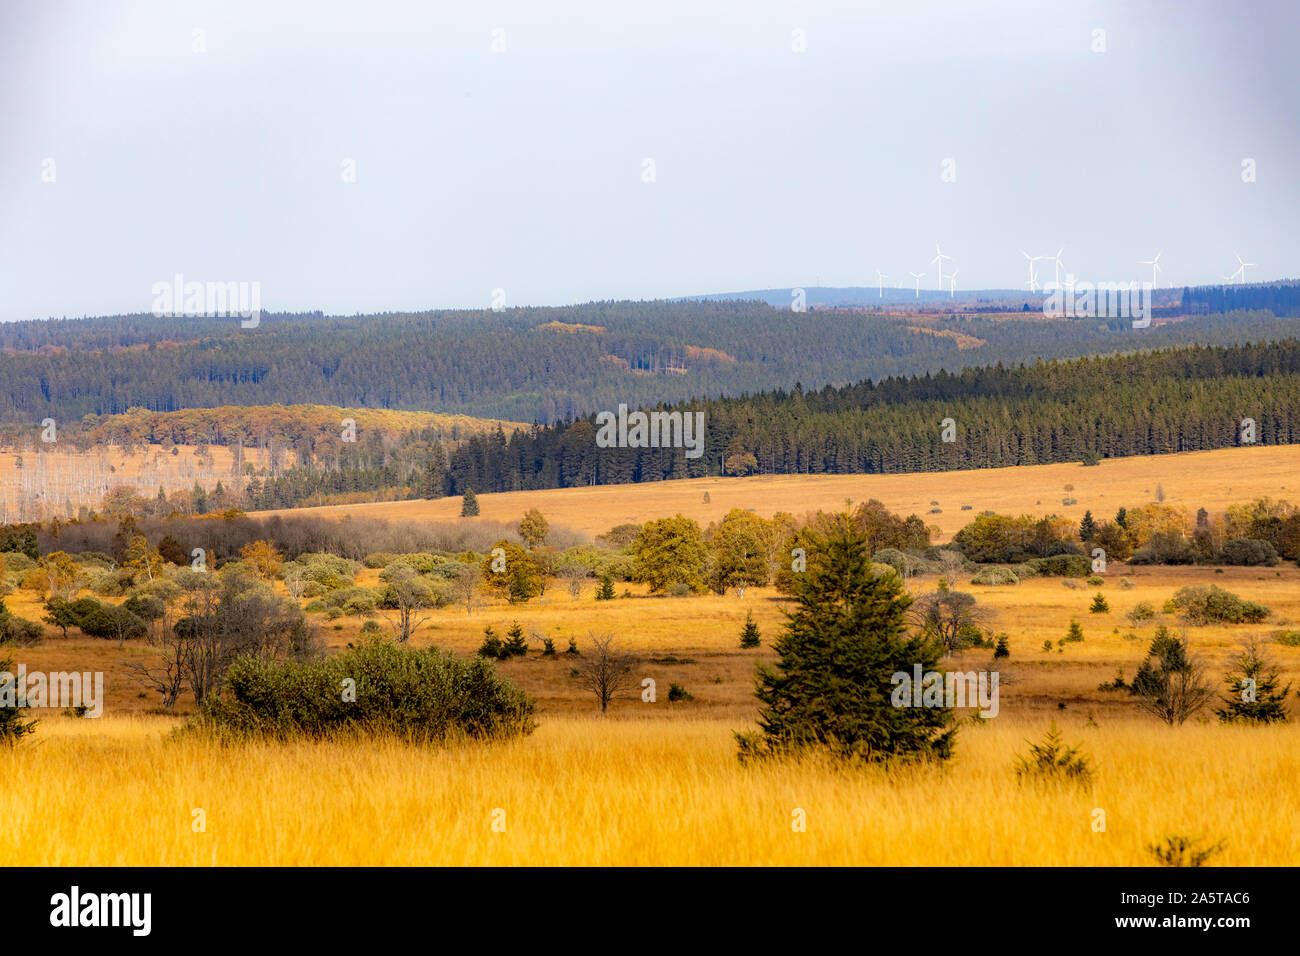 Belgium, Wallonia, the High Fens, high moor, in the Eifel and Ardennes region, High Fens Eifel Nature Park, northeast of Baraque Michel, overview, Stock Photo